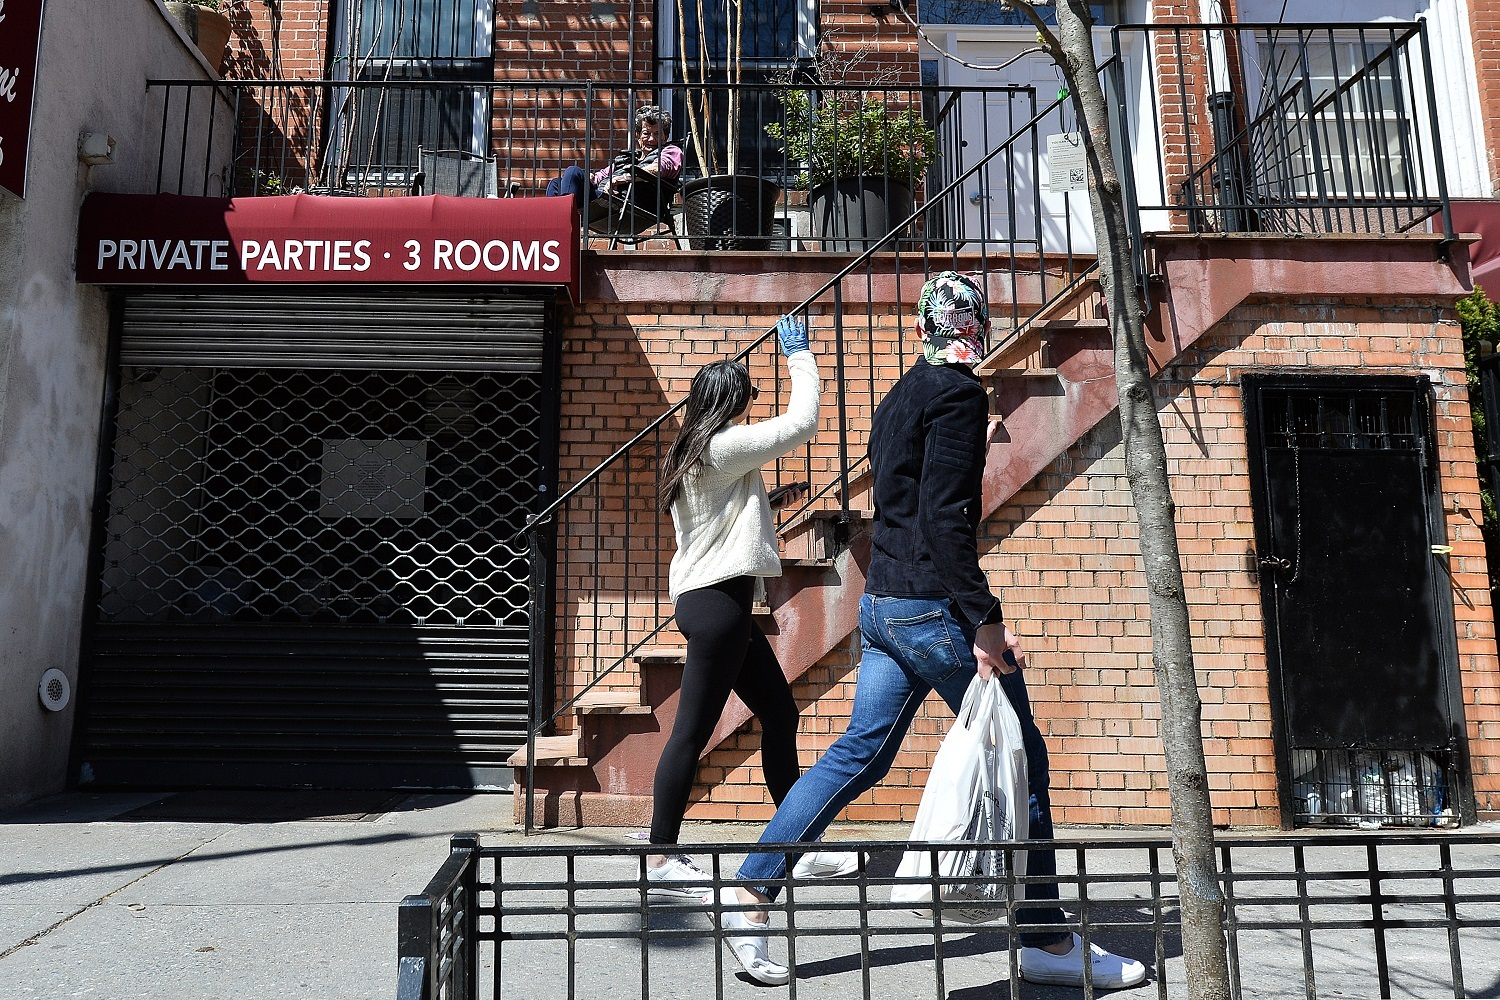 """As an act of kindness, a woman who only wants to be known as """"Jaon"""" waves and greets passersby from her second floor landing in the West Village section of New York City, NY, April 11, 2020. New York Gov. Andrew Cuomo announced that the number of positive Coronavirus cases, ICU admissions and hospitalizations are down indicating that New York may have reached the apex of the pandemic. (Anthony Behar/Sipa USA)No Use UK. No Use Germany."""